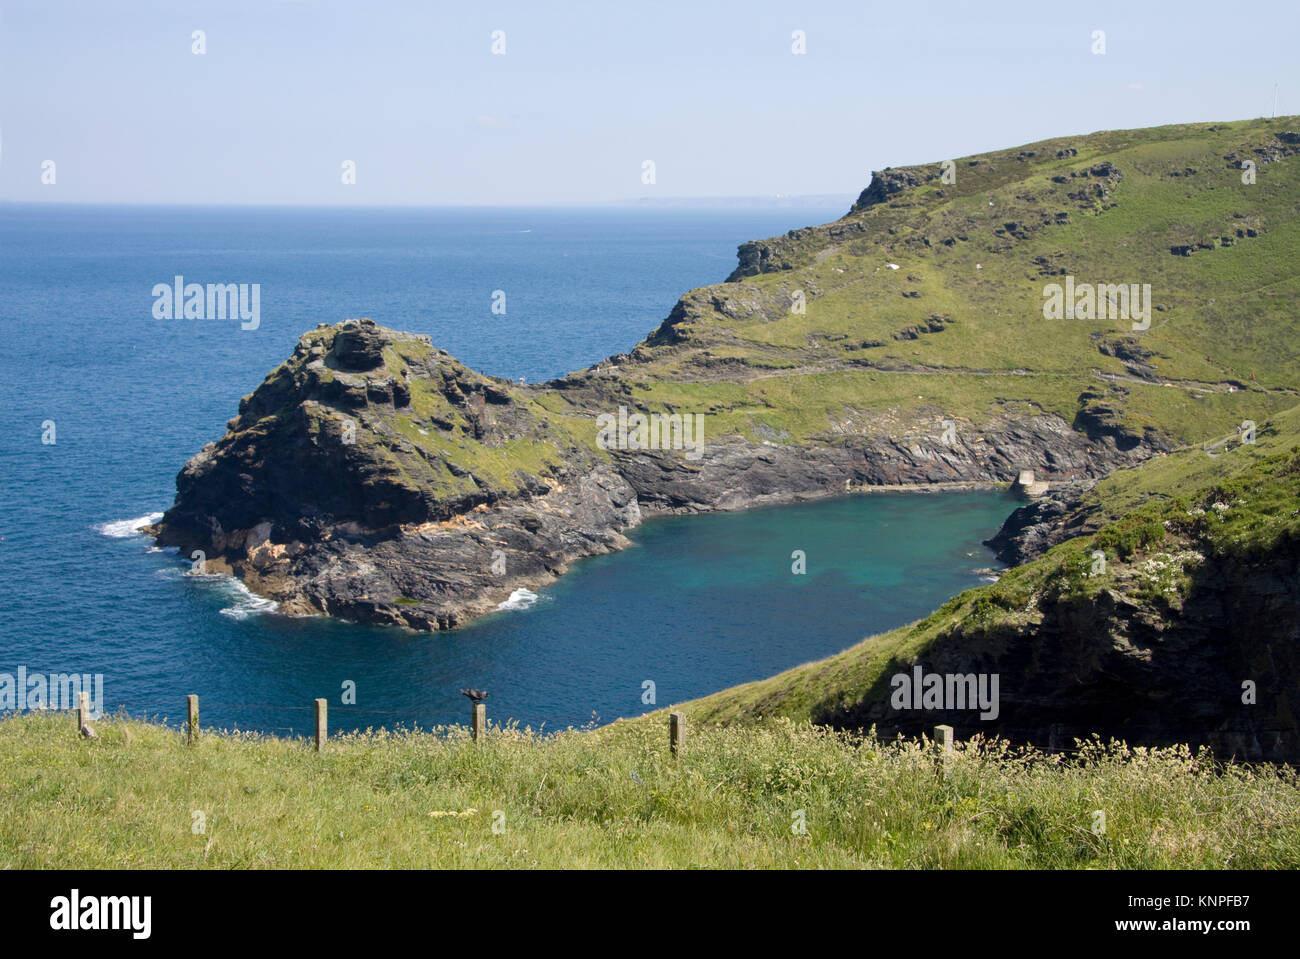 Penally Point and Boscastle Harbour on the north Cornwall coast in England. - Stock Image